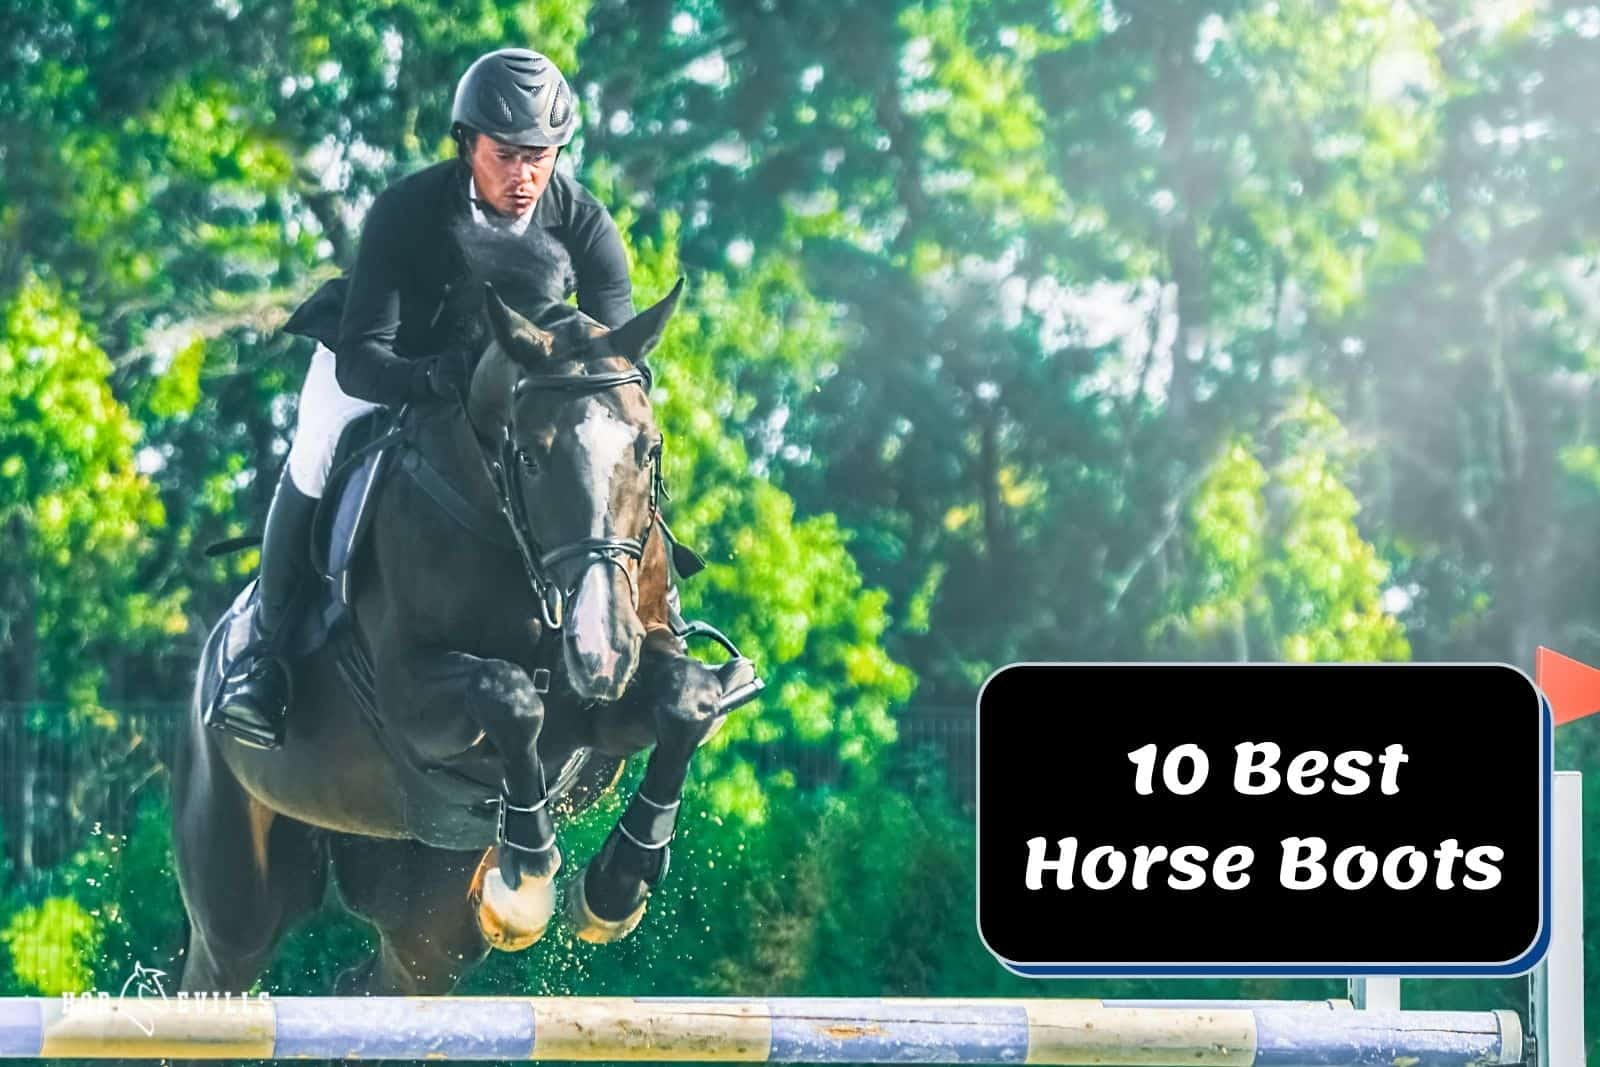 equestrian riding a horse with the best horse boots